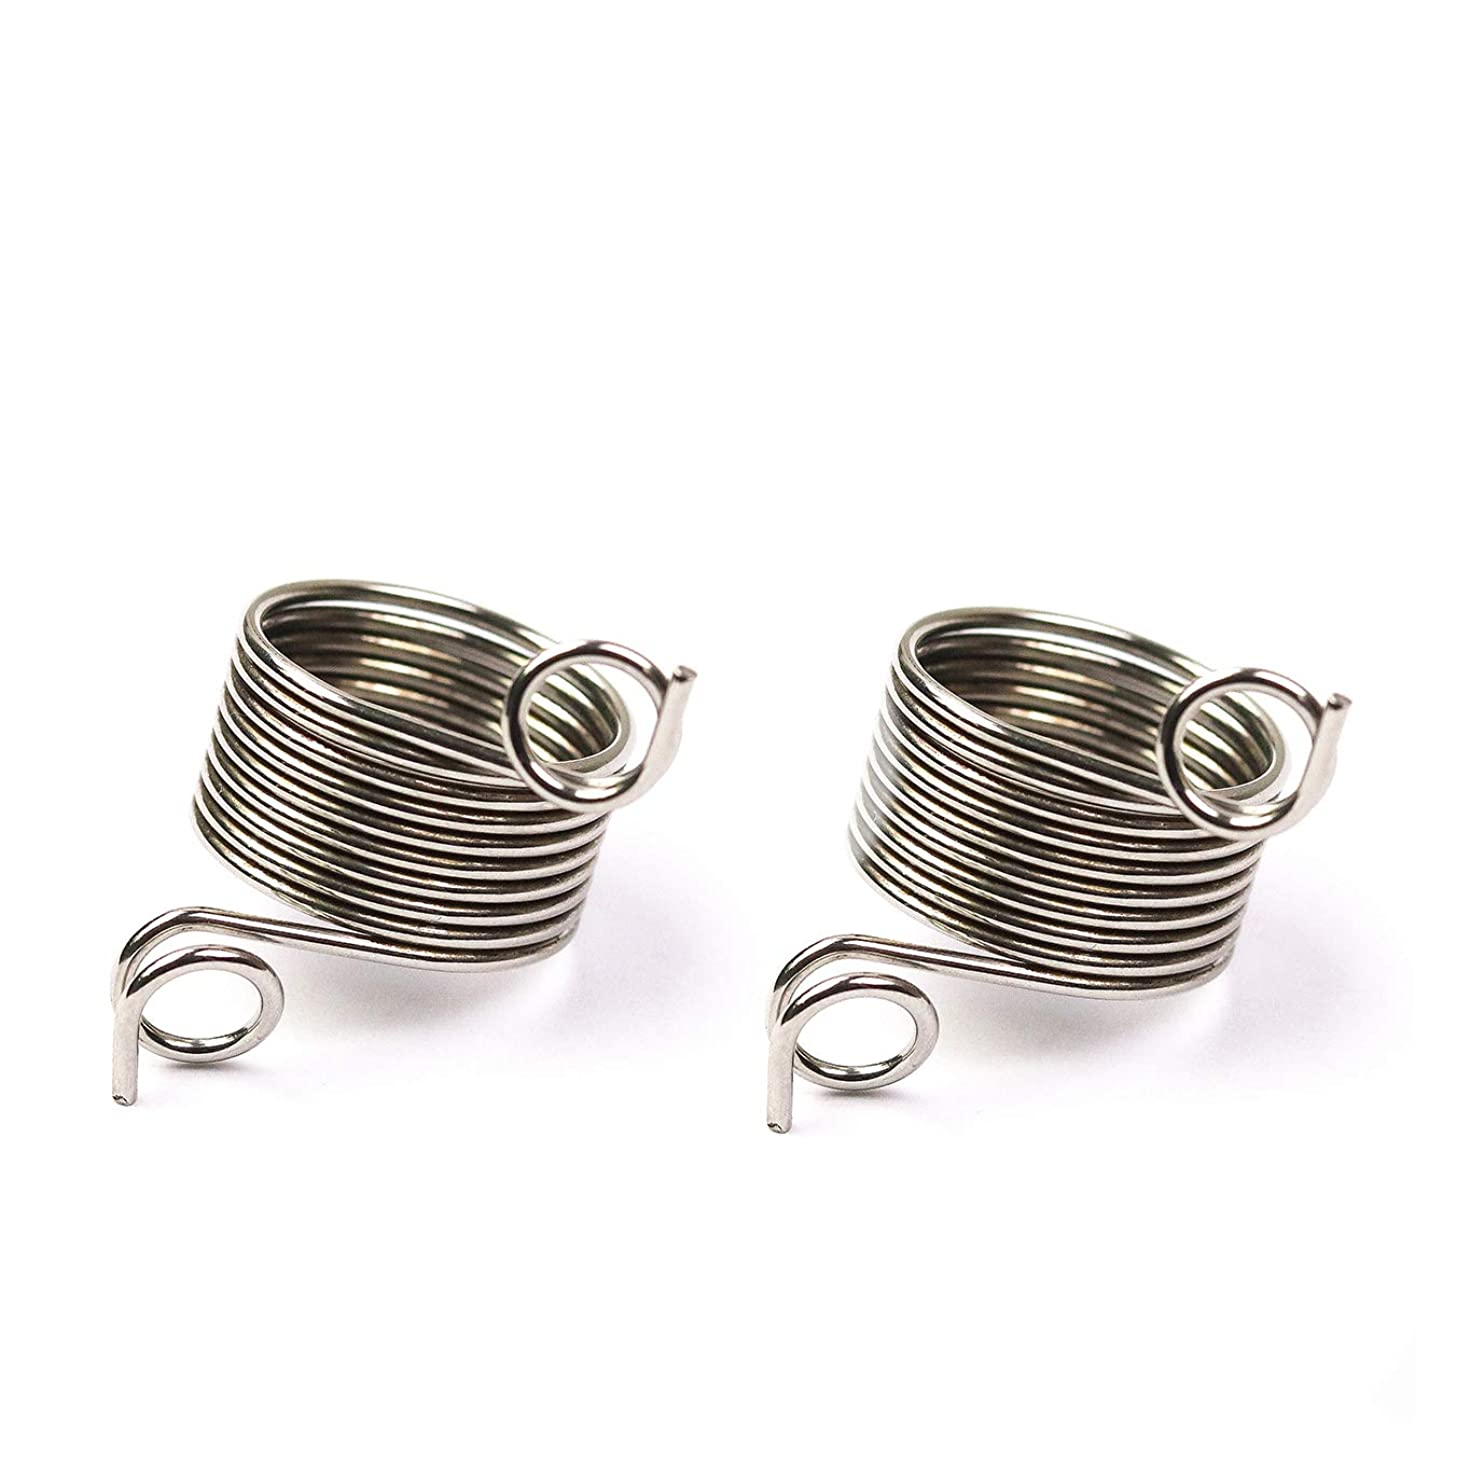 D&D 2-Pack Metal Yarn Guide Knitting Thimble for Knitting Knit Crafts Accessories Tools